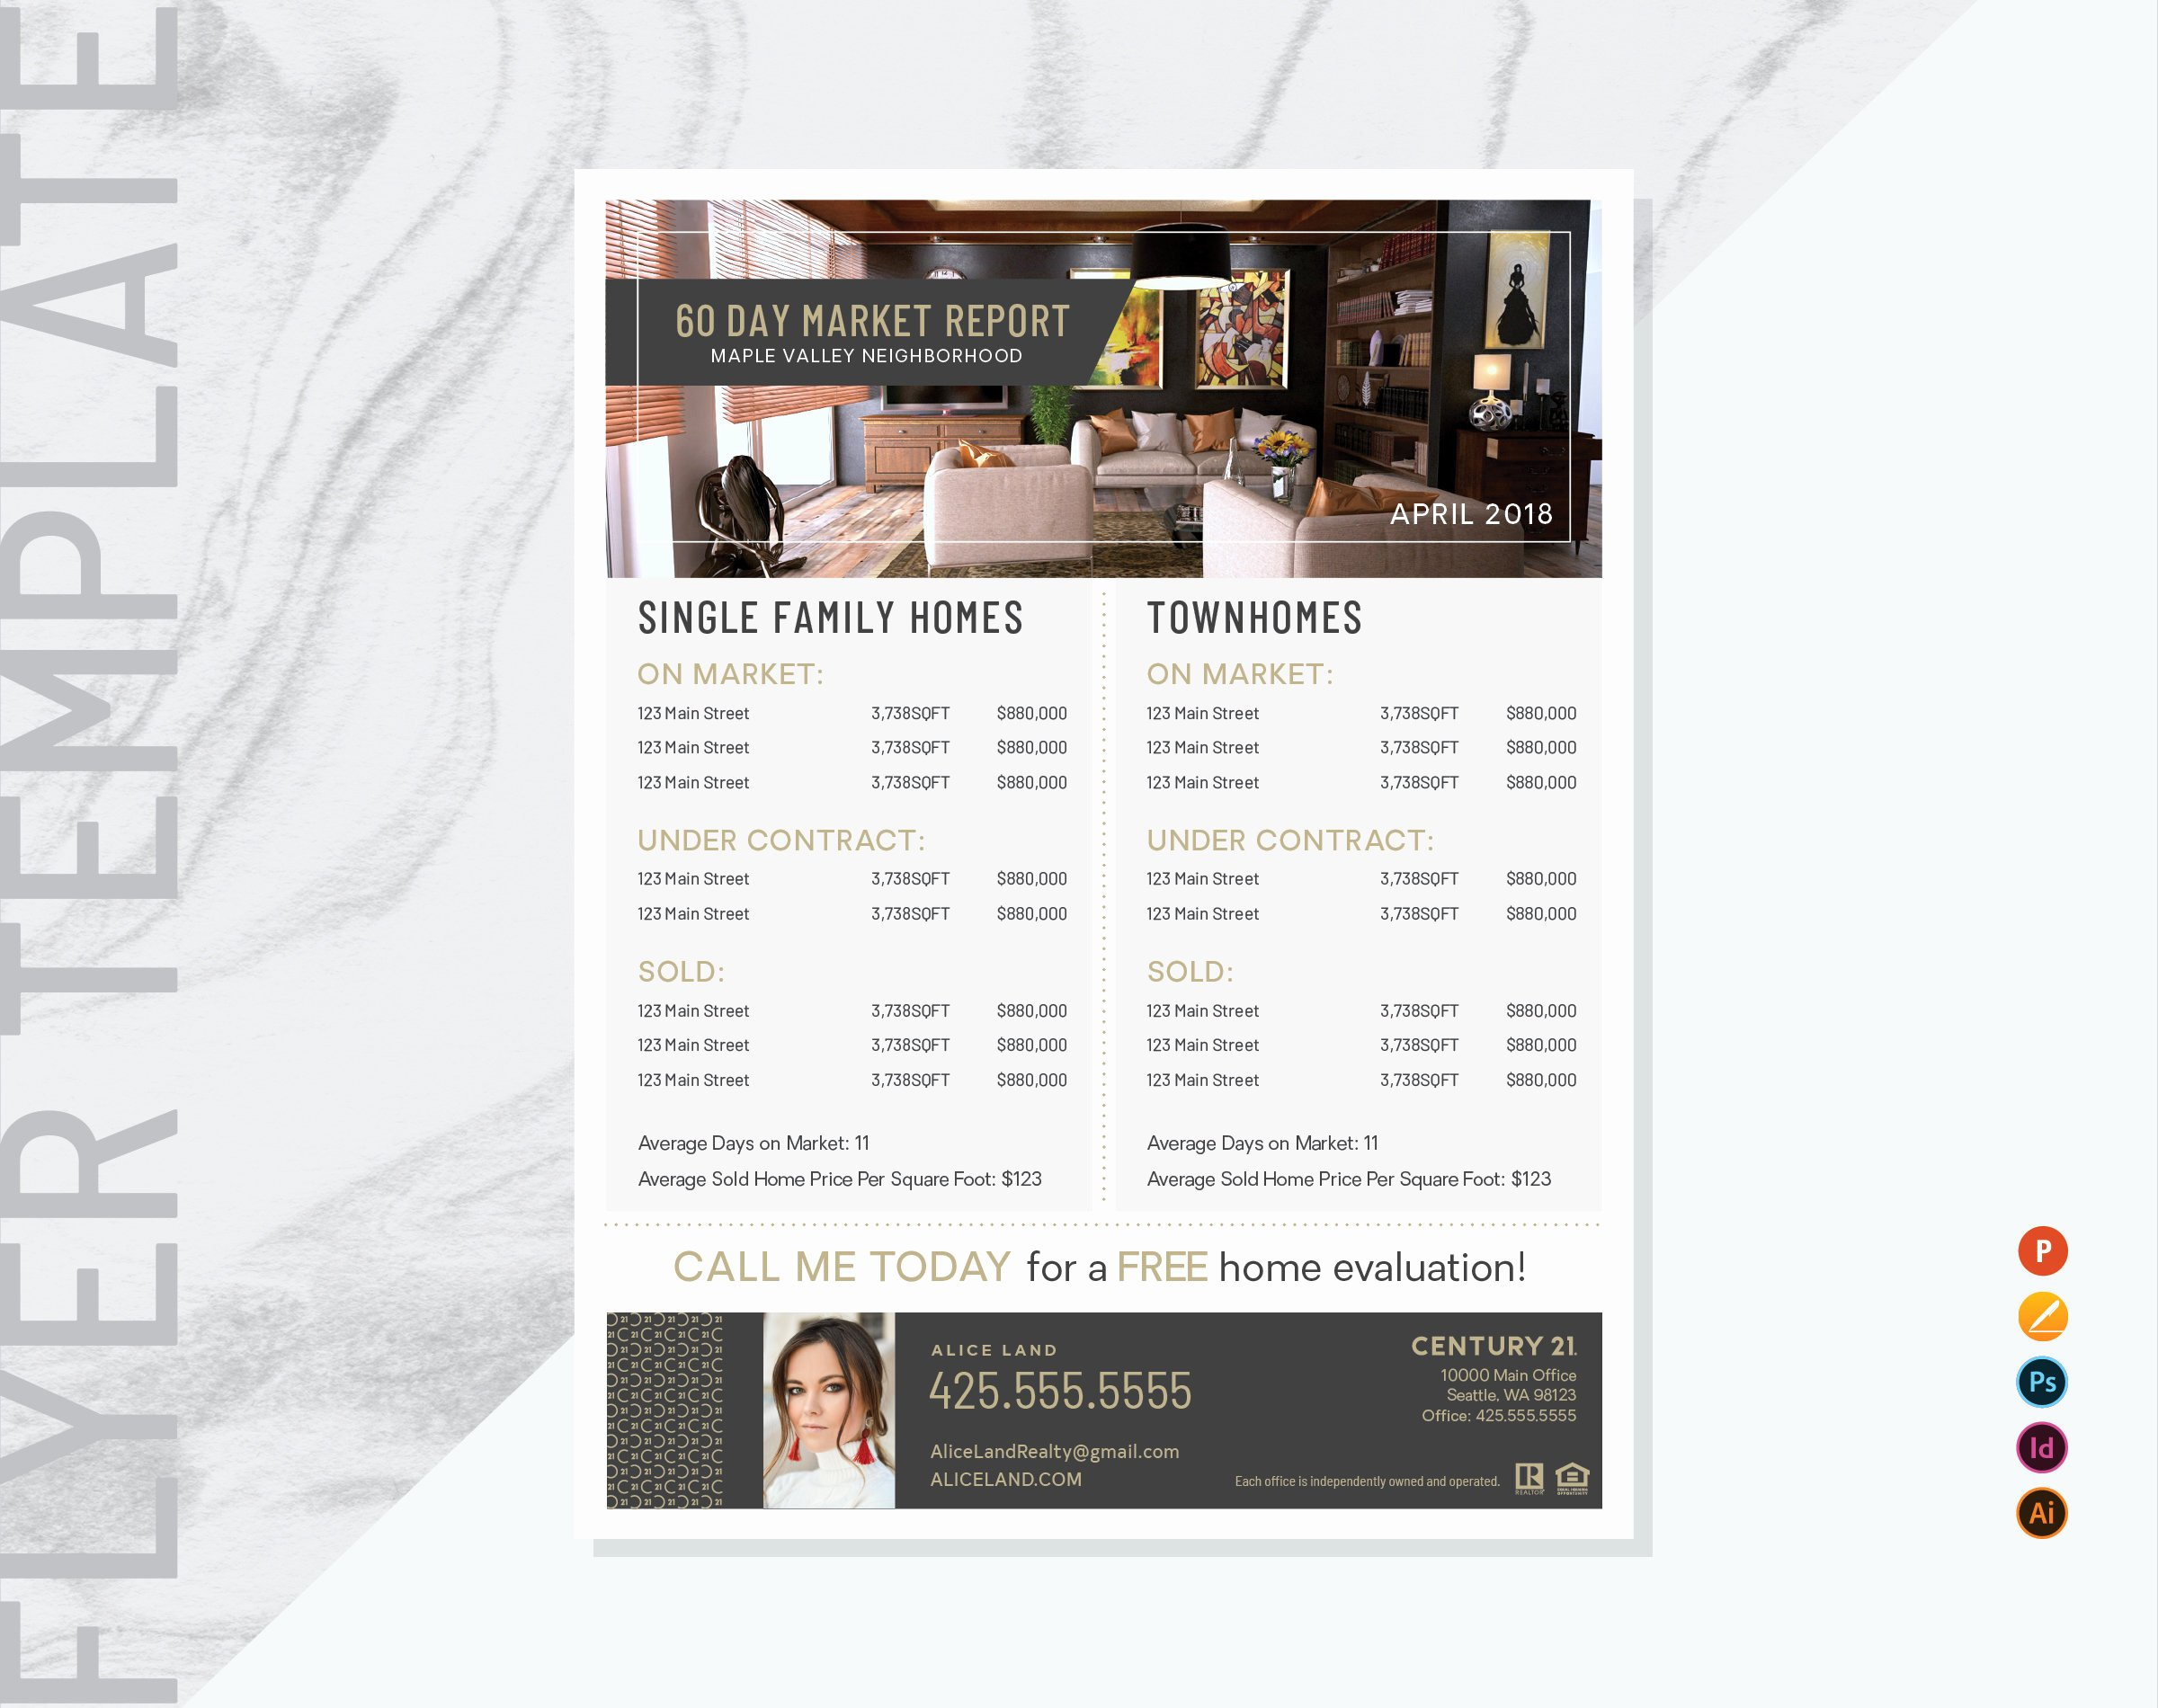 Real Estate Market Update Template Beautiful Century 21 Real Estate Market Update Flyer Template Real